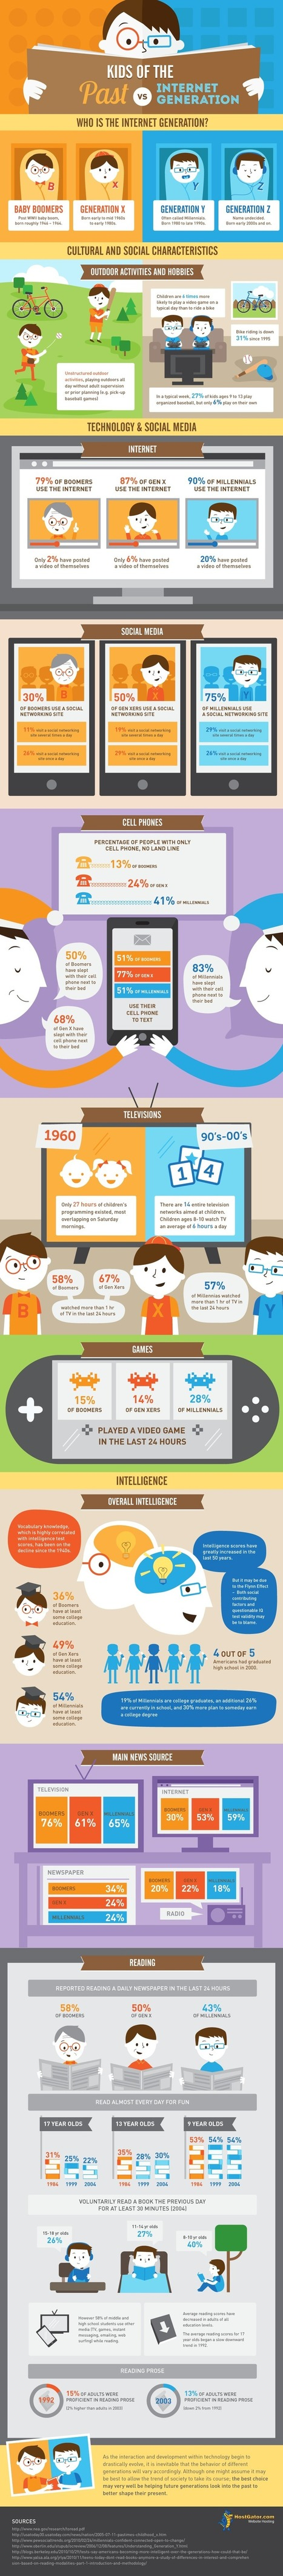 Infographic: Kids of the Past vs. Kids of the Internet Generation | Education Leadership | Scoop.it